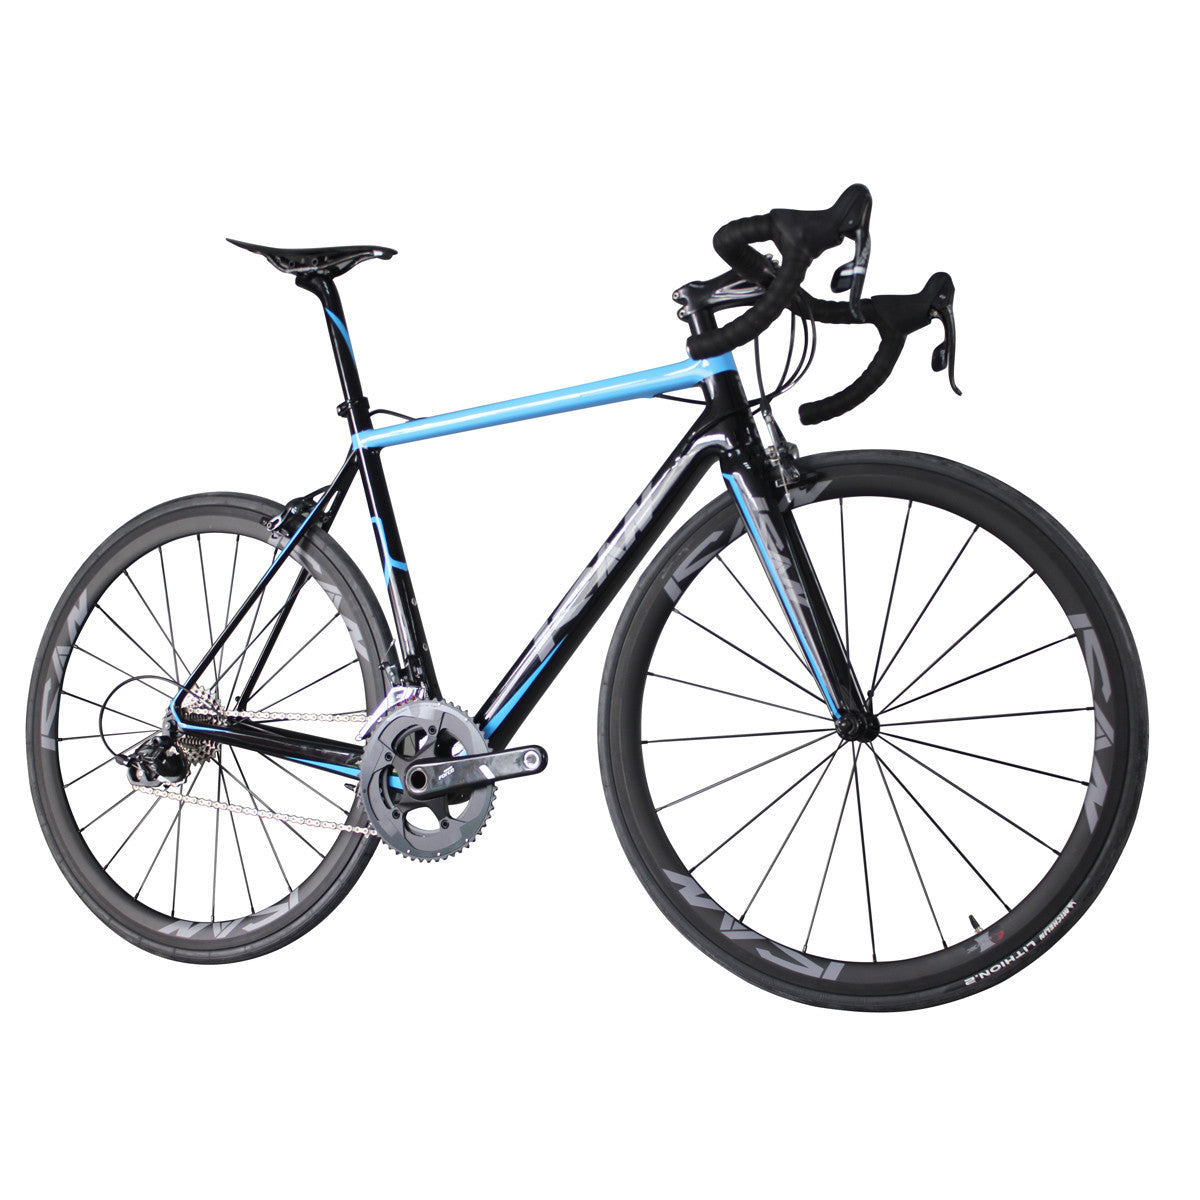 Rocket SL Carbon Lightweight Racing Bike